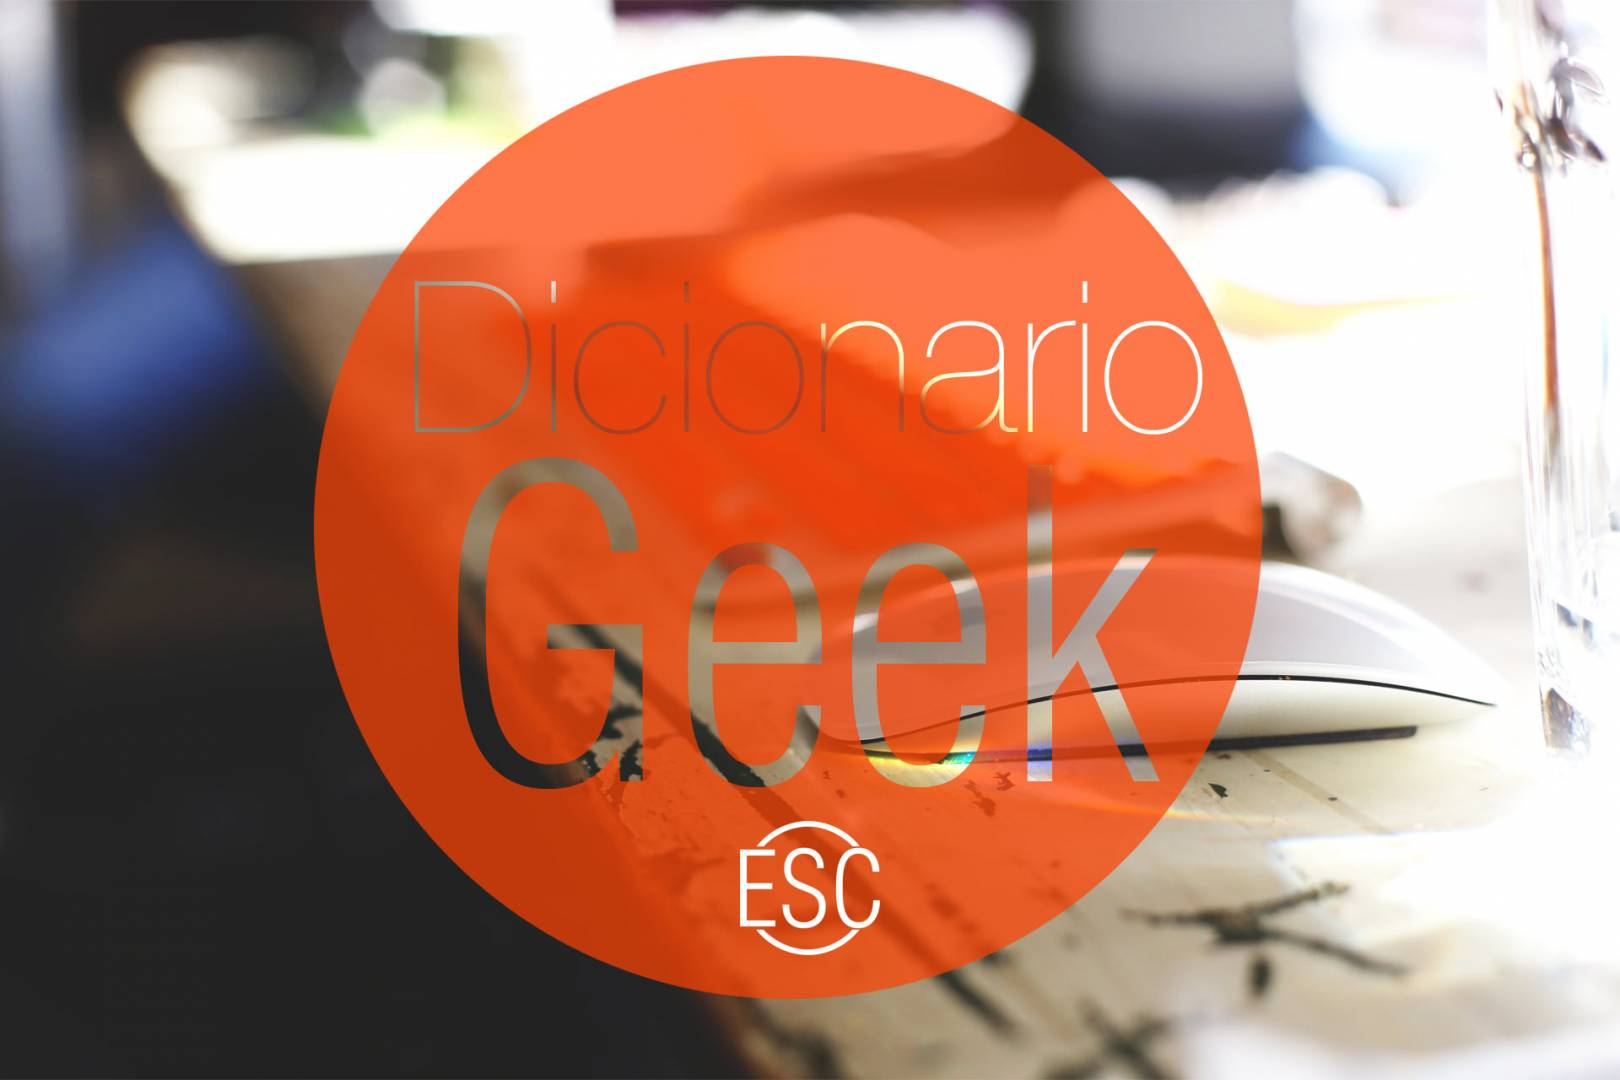 escapedigital-diccionariogeek